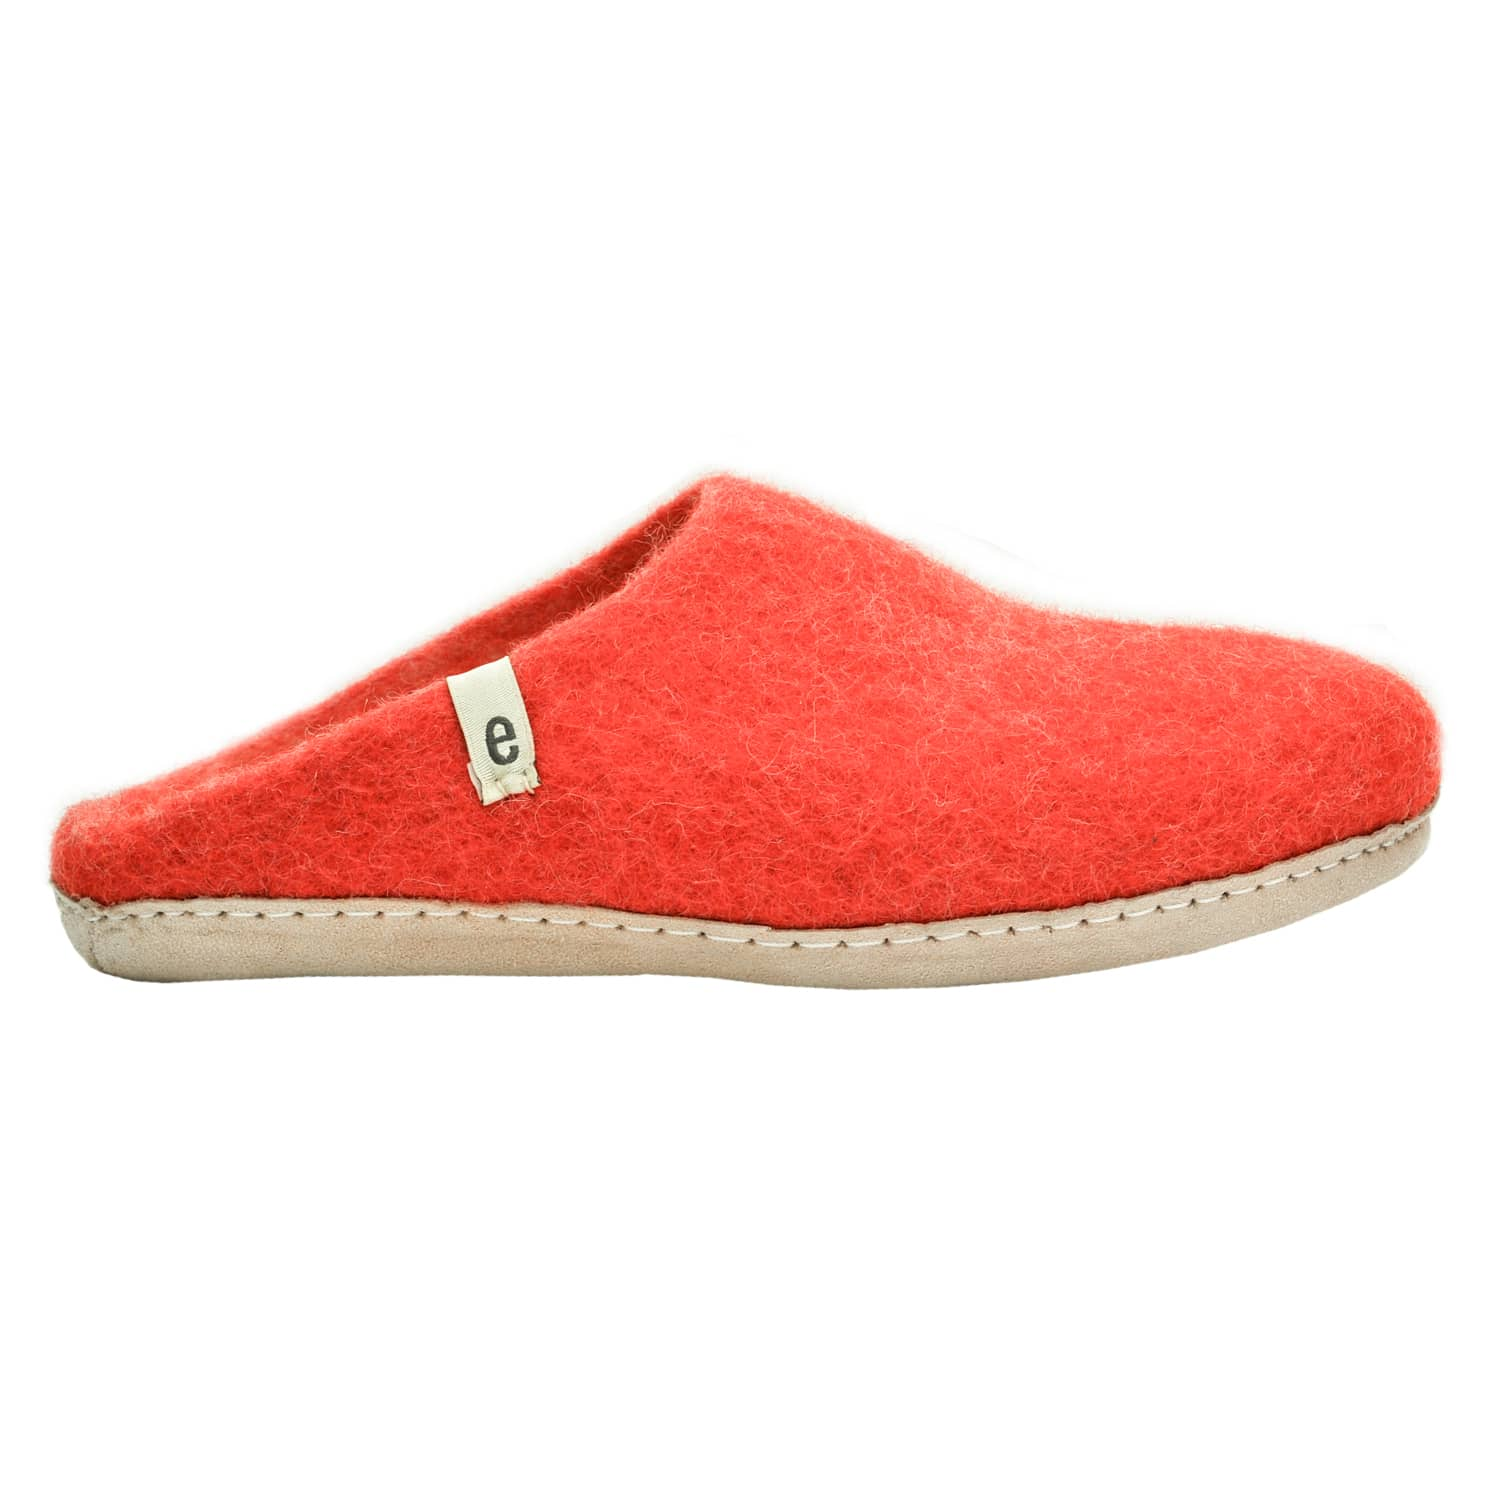 Egos Copenhagen Rusty Red Handmade 100% Wool Felted Slippers